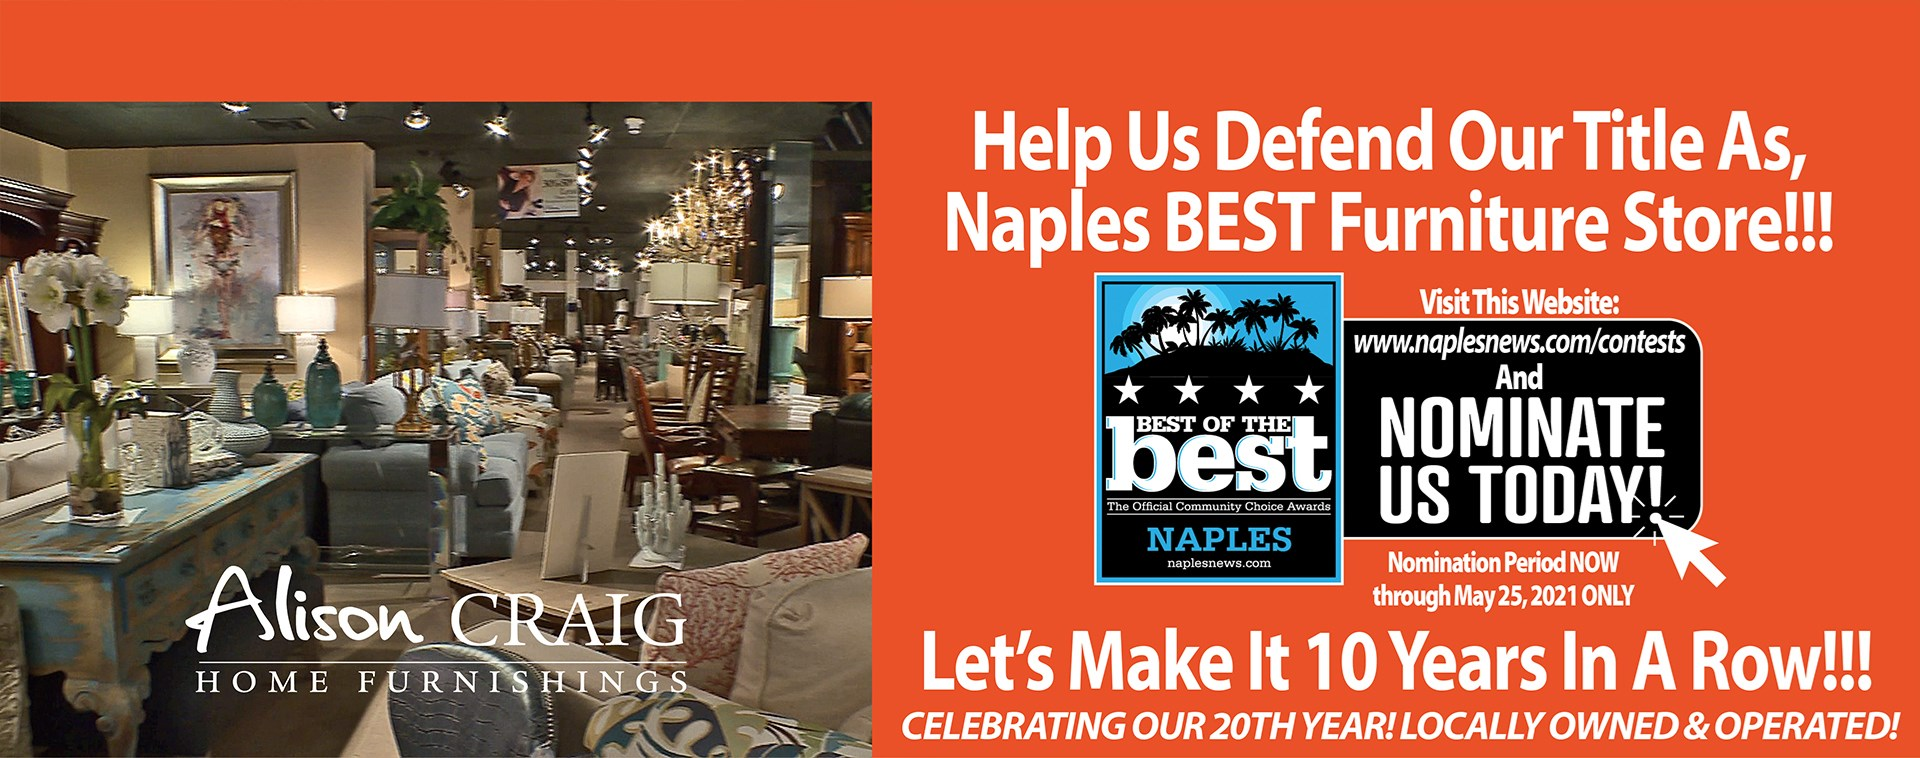 Click To Nominate Us - BEST Furniture Store